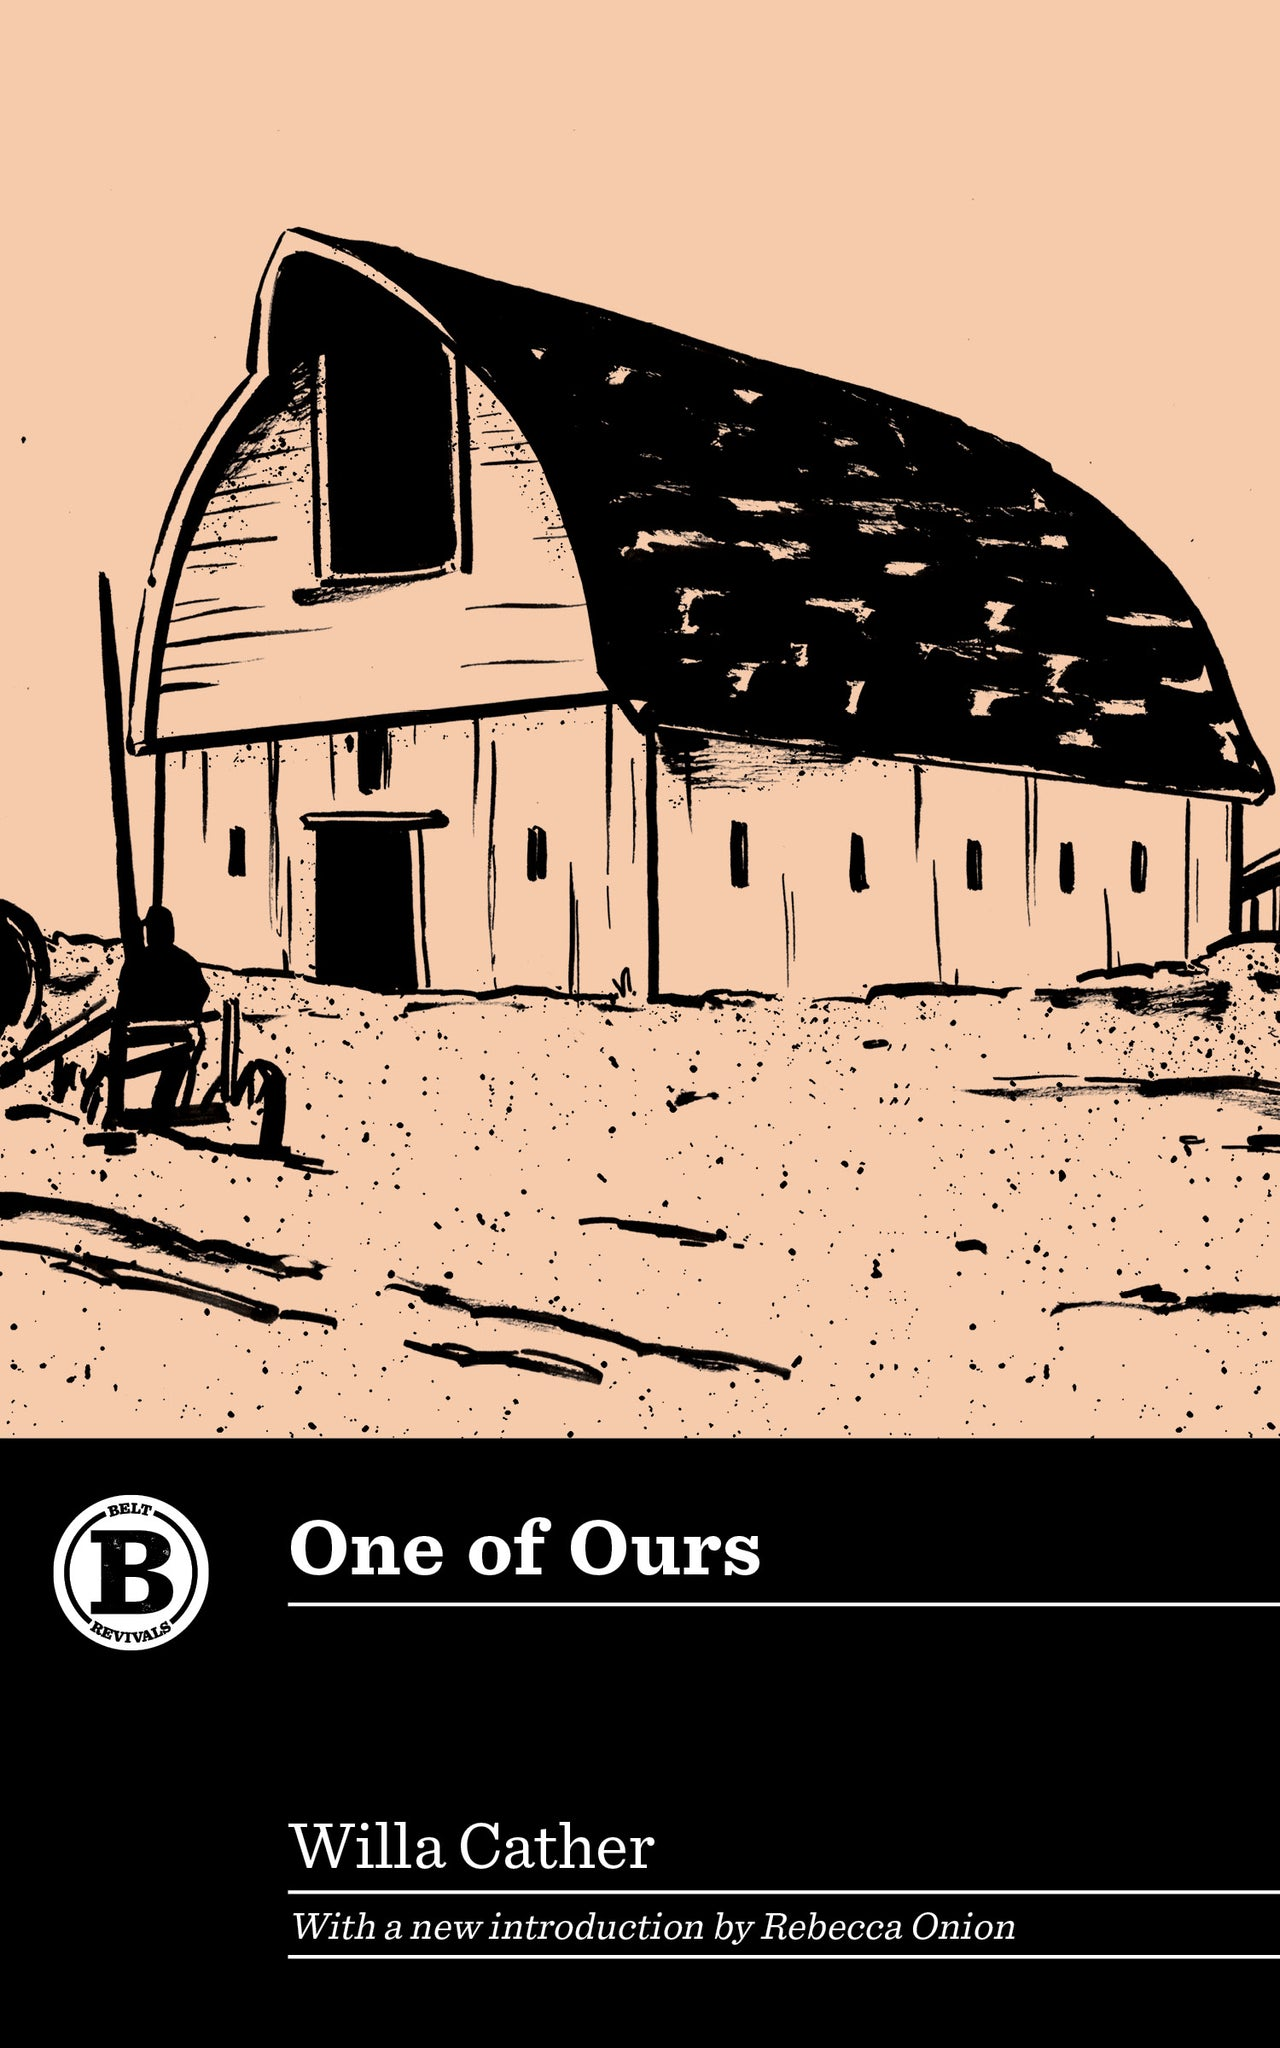 One of Ours by Willa Cather (pre-order)